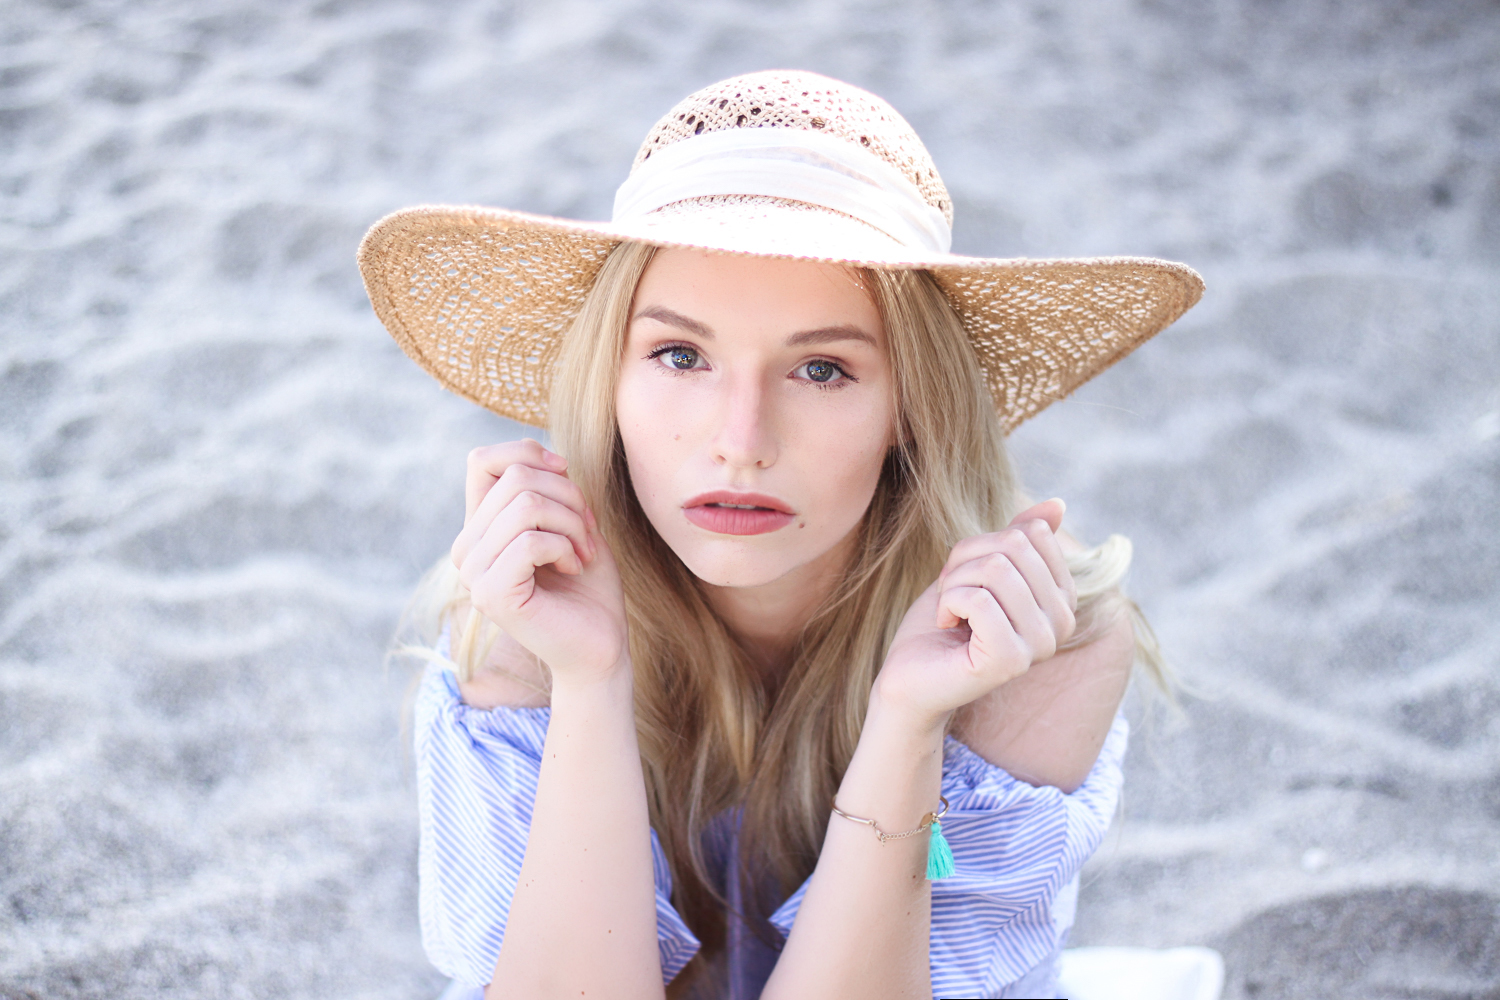 franziska-elea-deutsche-blogger-modeblog-fashionblog-muenchen-urlaub-meer-strand-hut-portrait-beauty-off-shoulder-sommer-shooting-vacay-beach